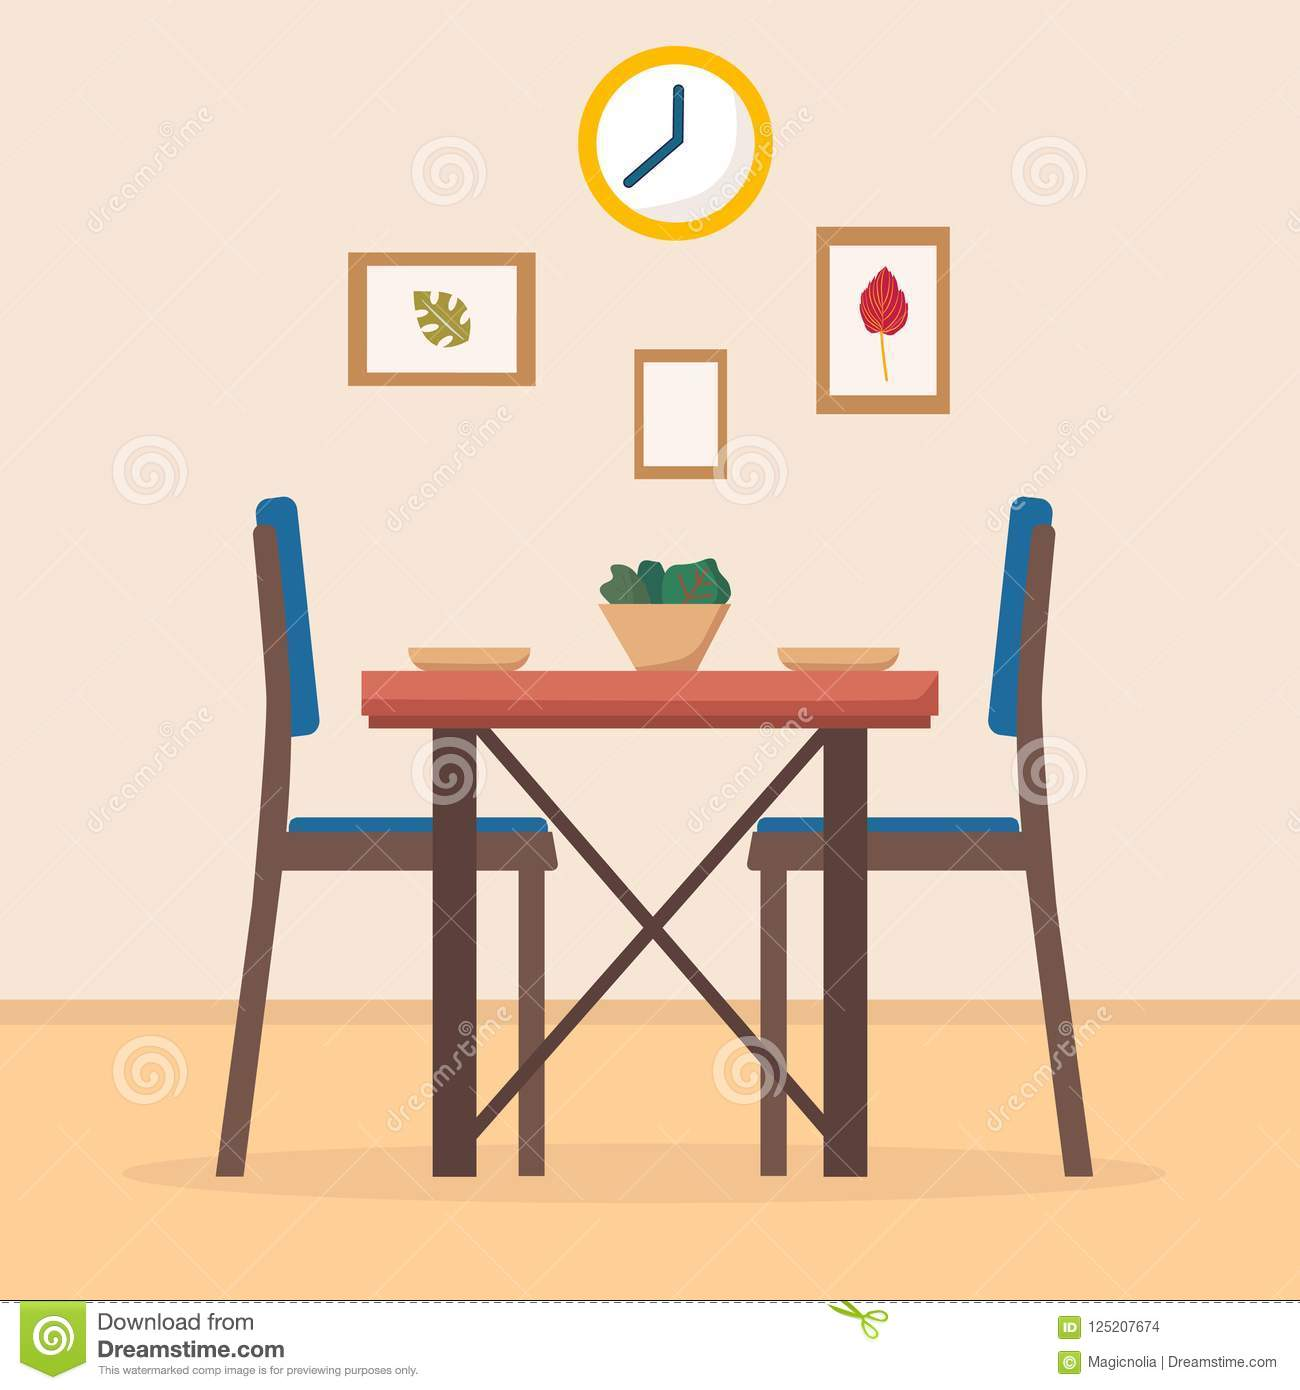 Cartoon Kitchen Furniture: Dining Table In Kitchen With Chairs, Clocks, Frames